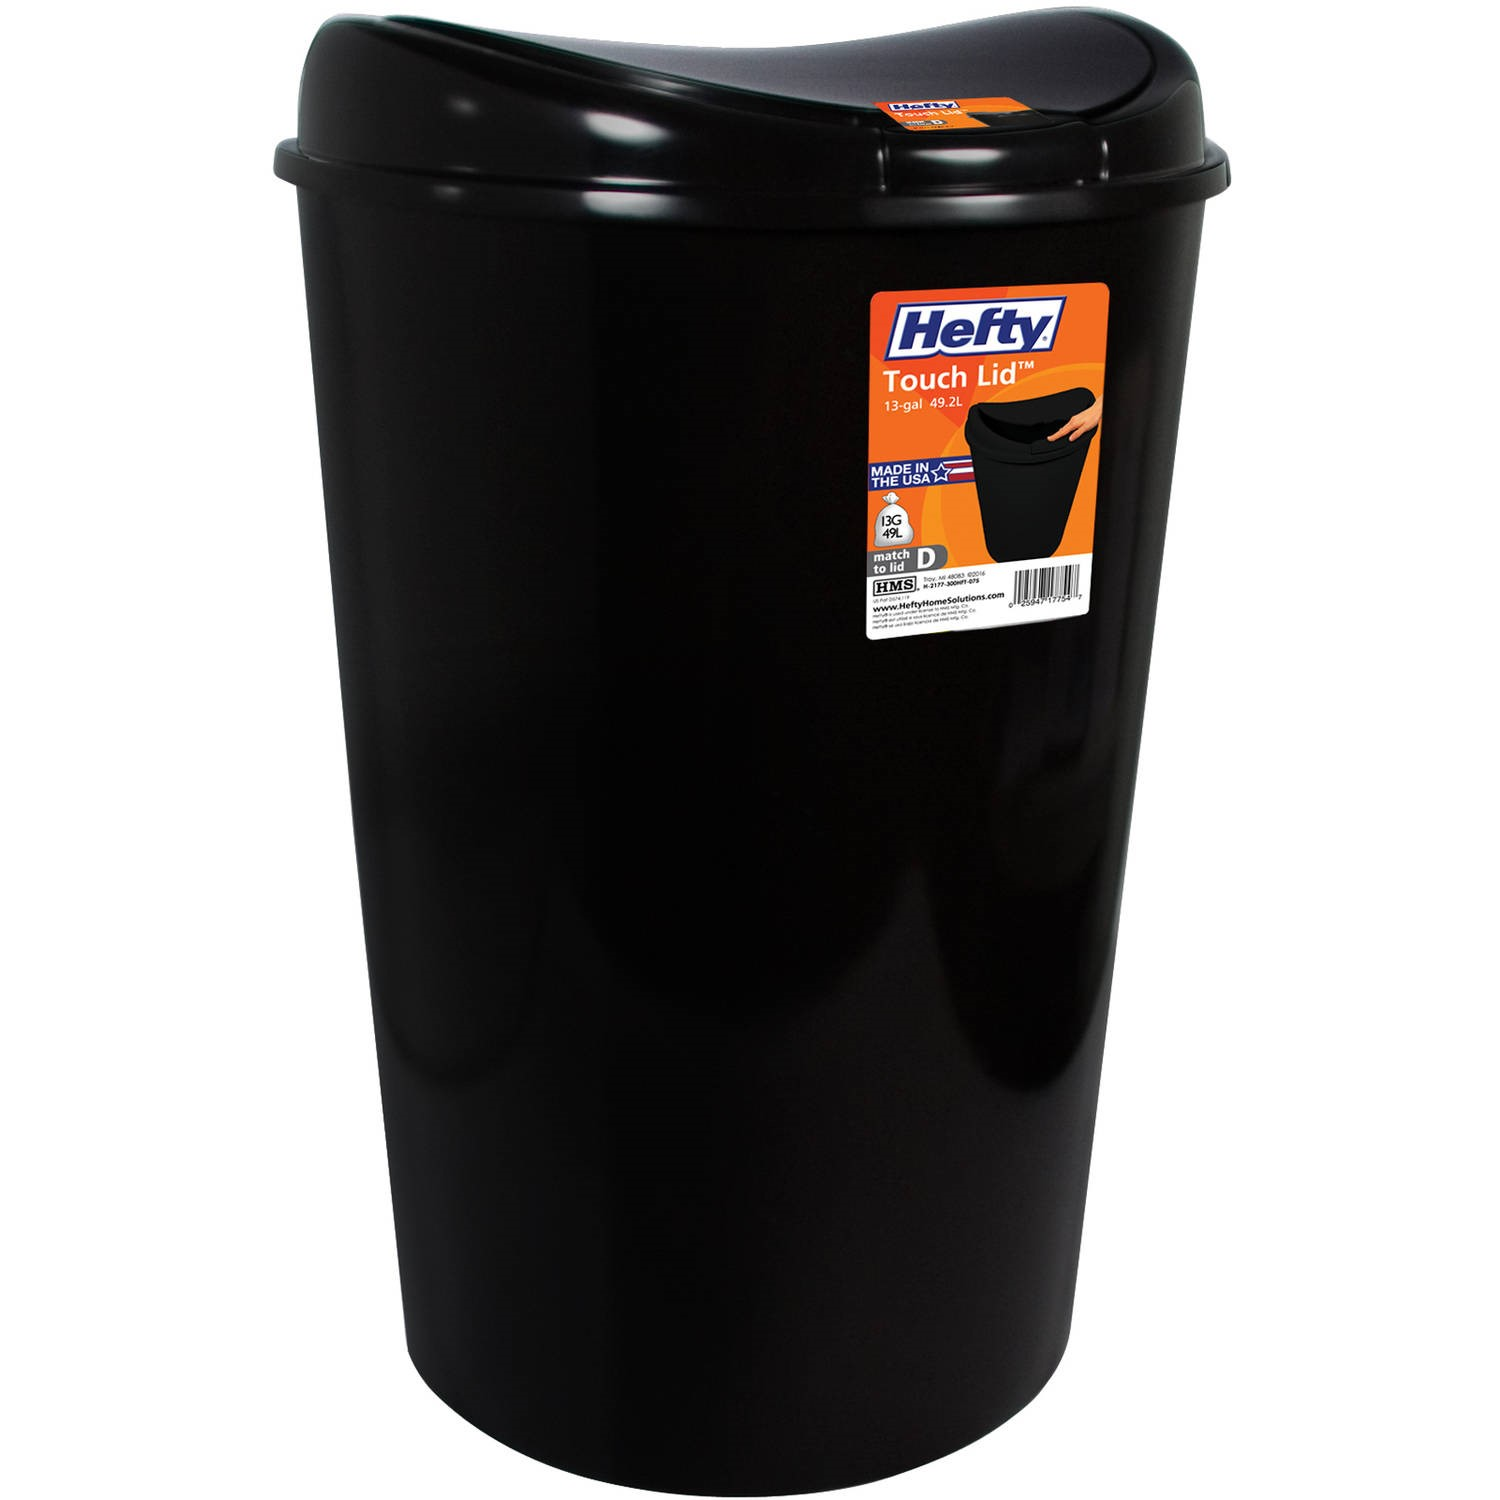 Hefty 13.8-Gallon Semi-Round Touch Lid Trash Can, Black by Reynolds Consumer Products LLC